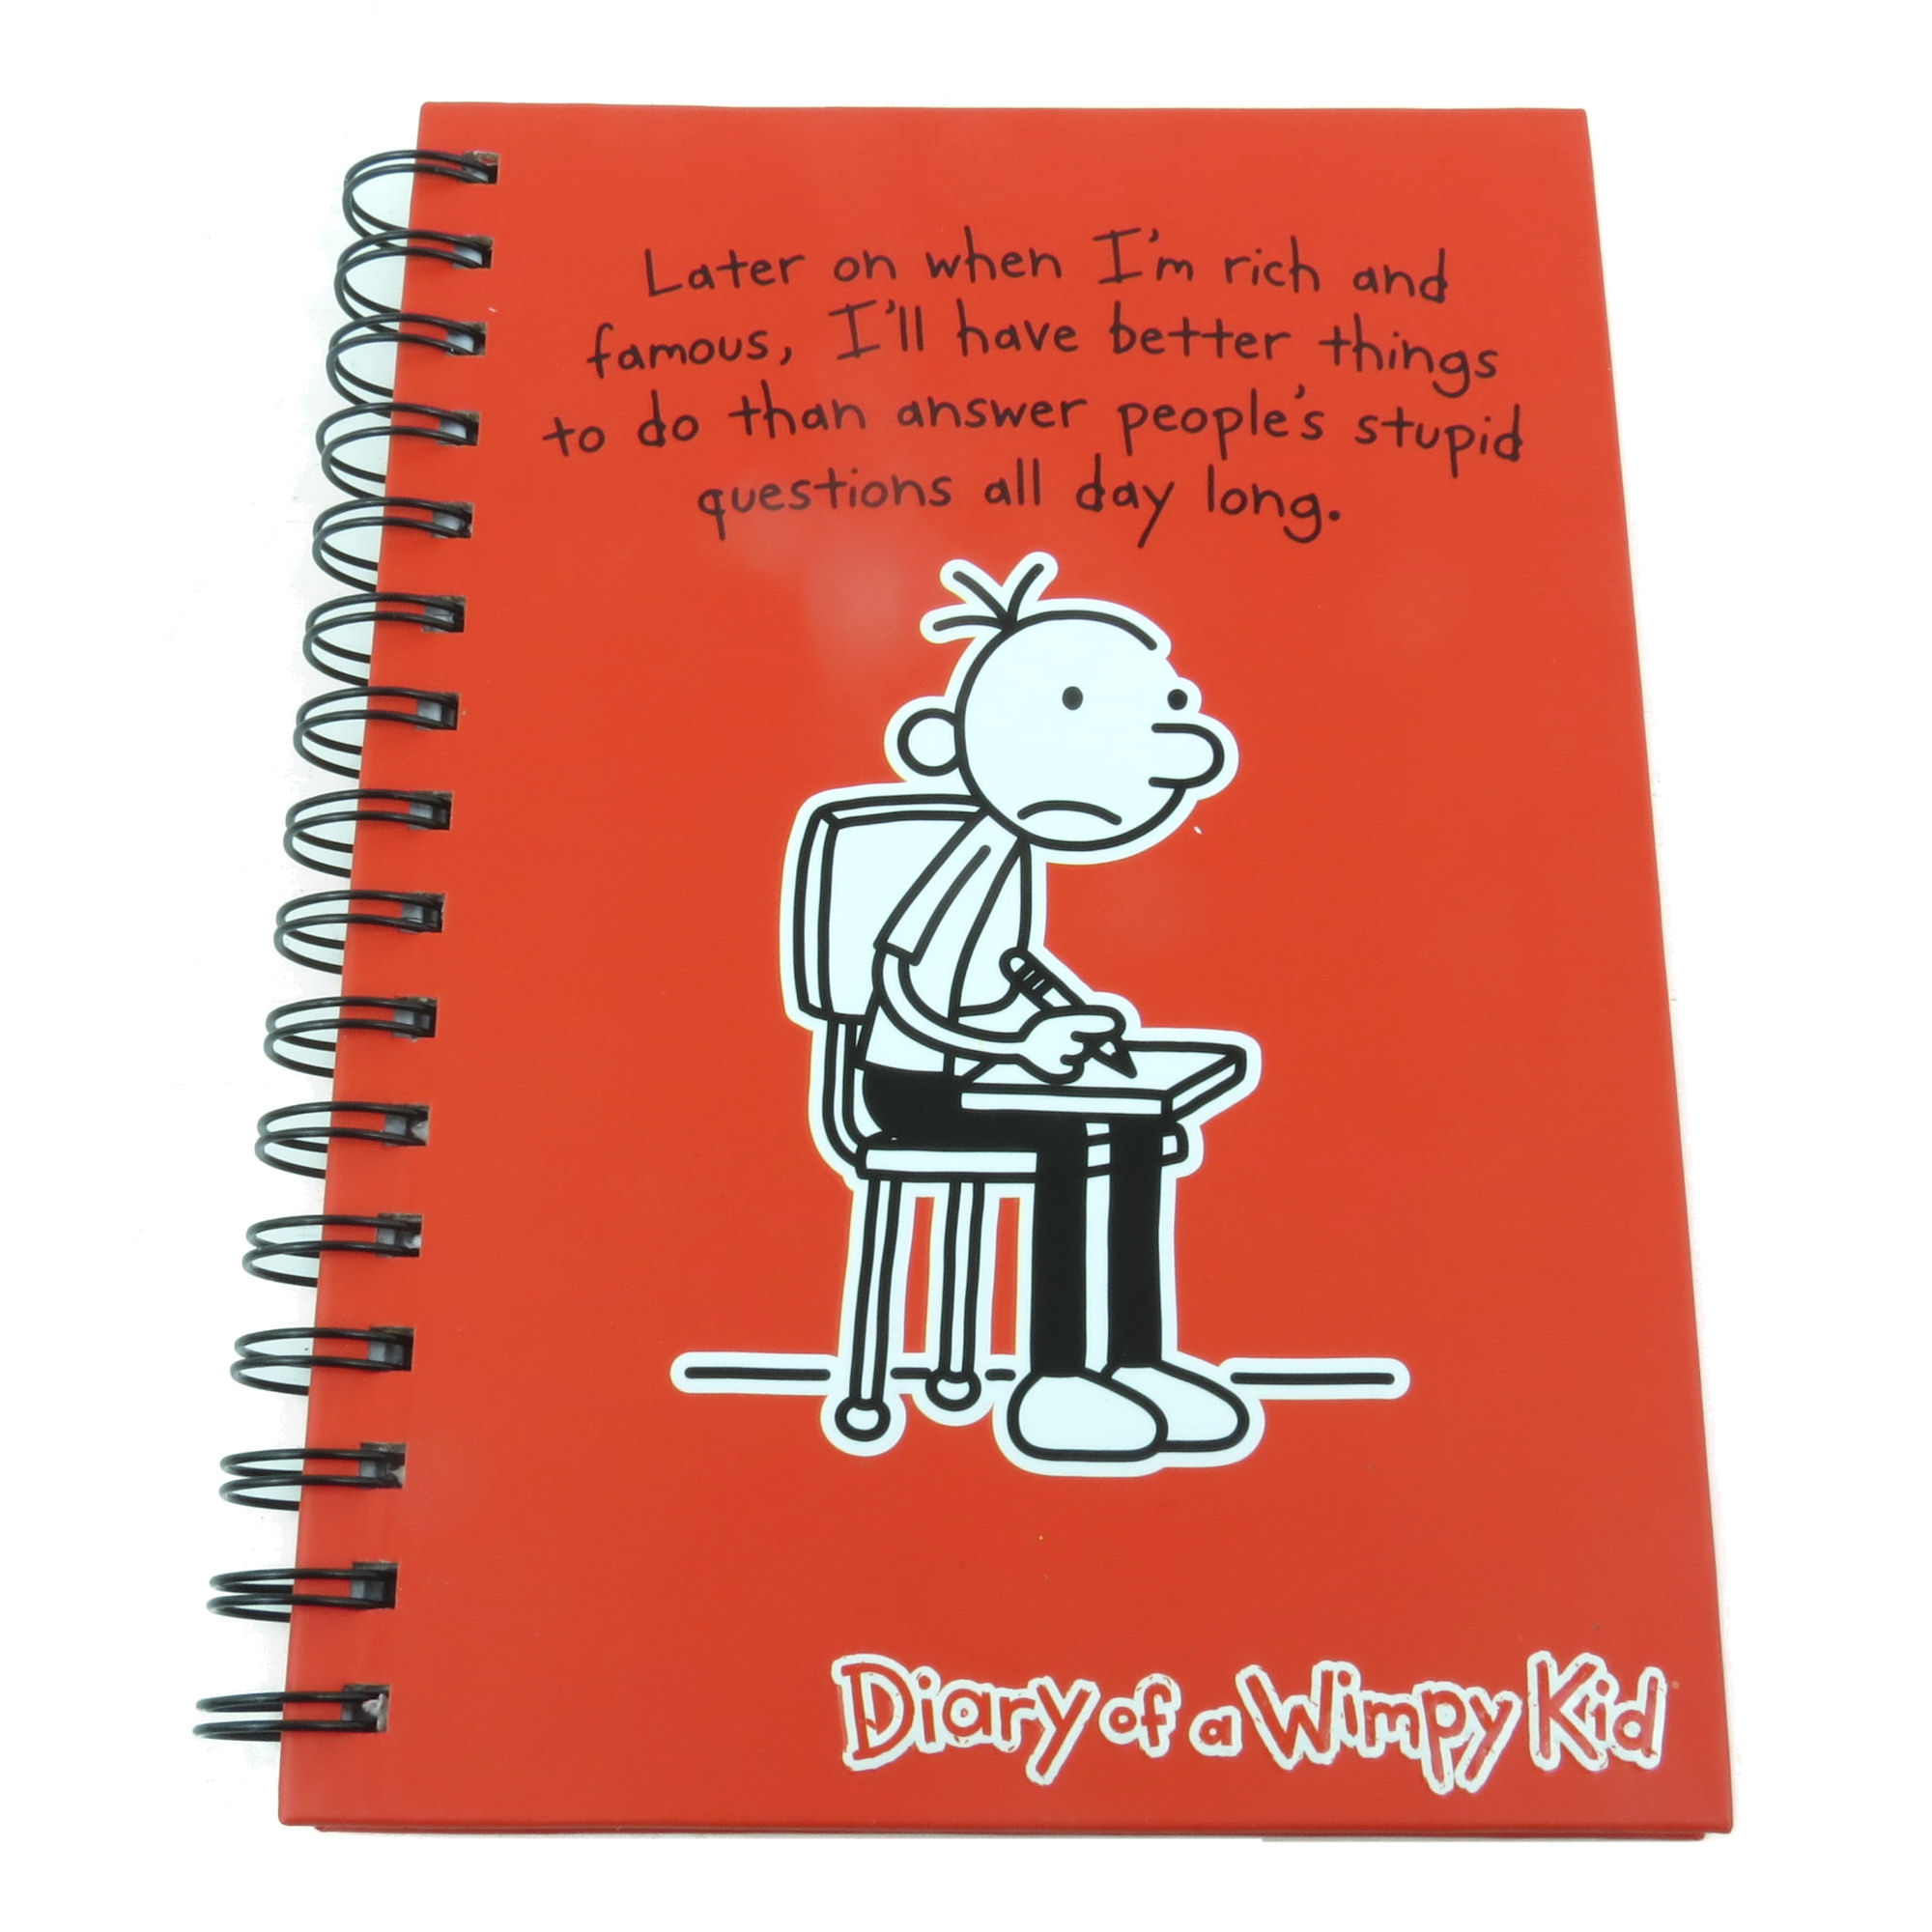 A5 diary of a wimpy kid hardback notebook journal lined paper pad a5 diary of a wimpy kid hardback notebook solutioingenieria Gallery